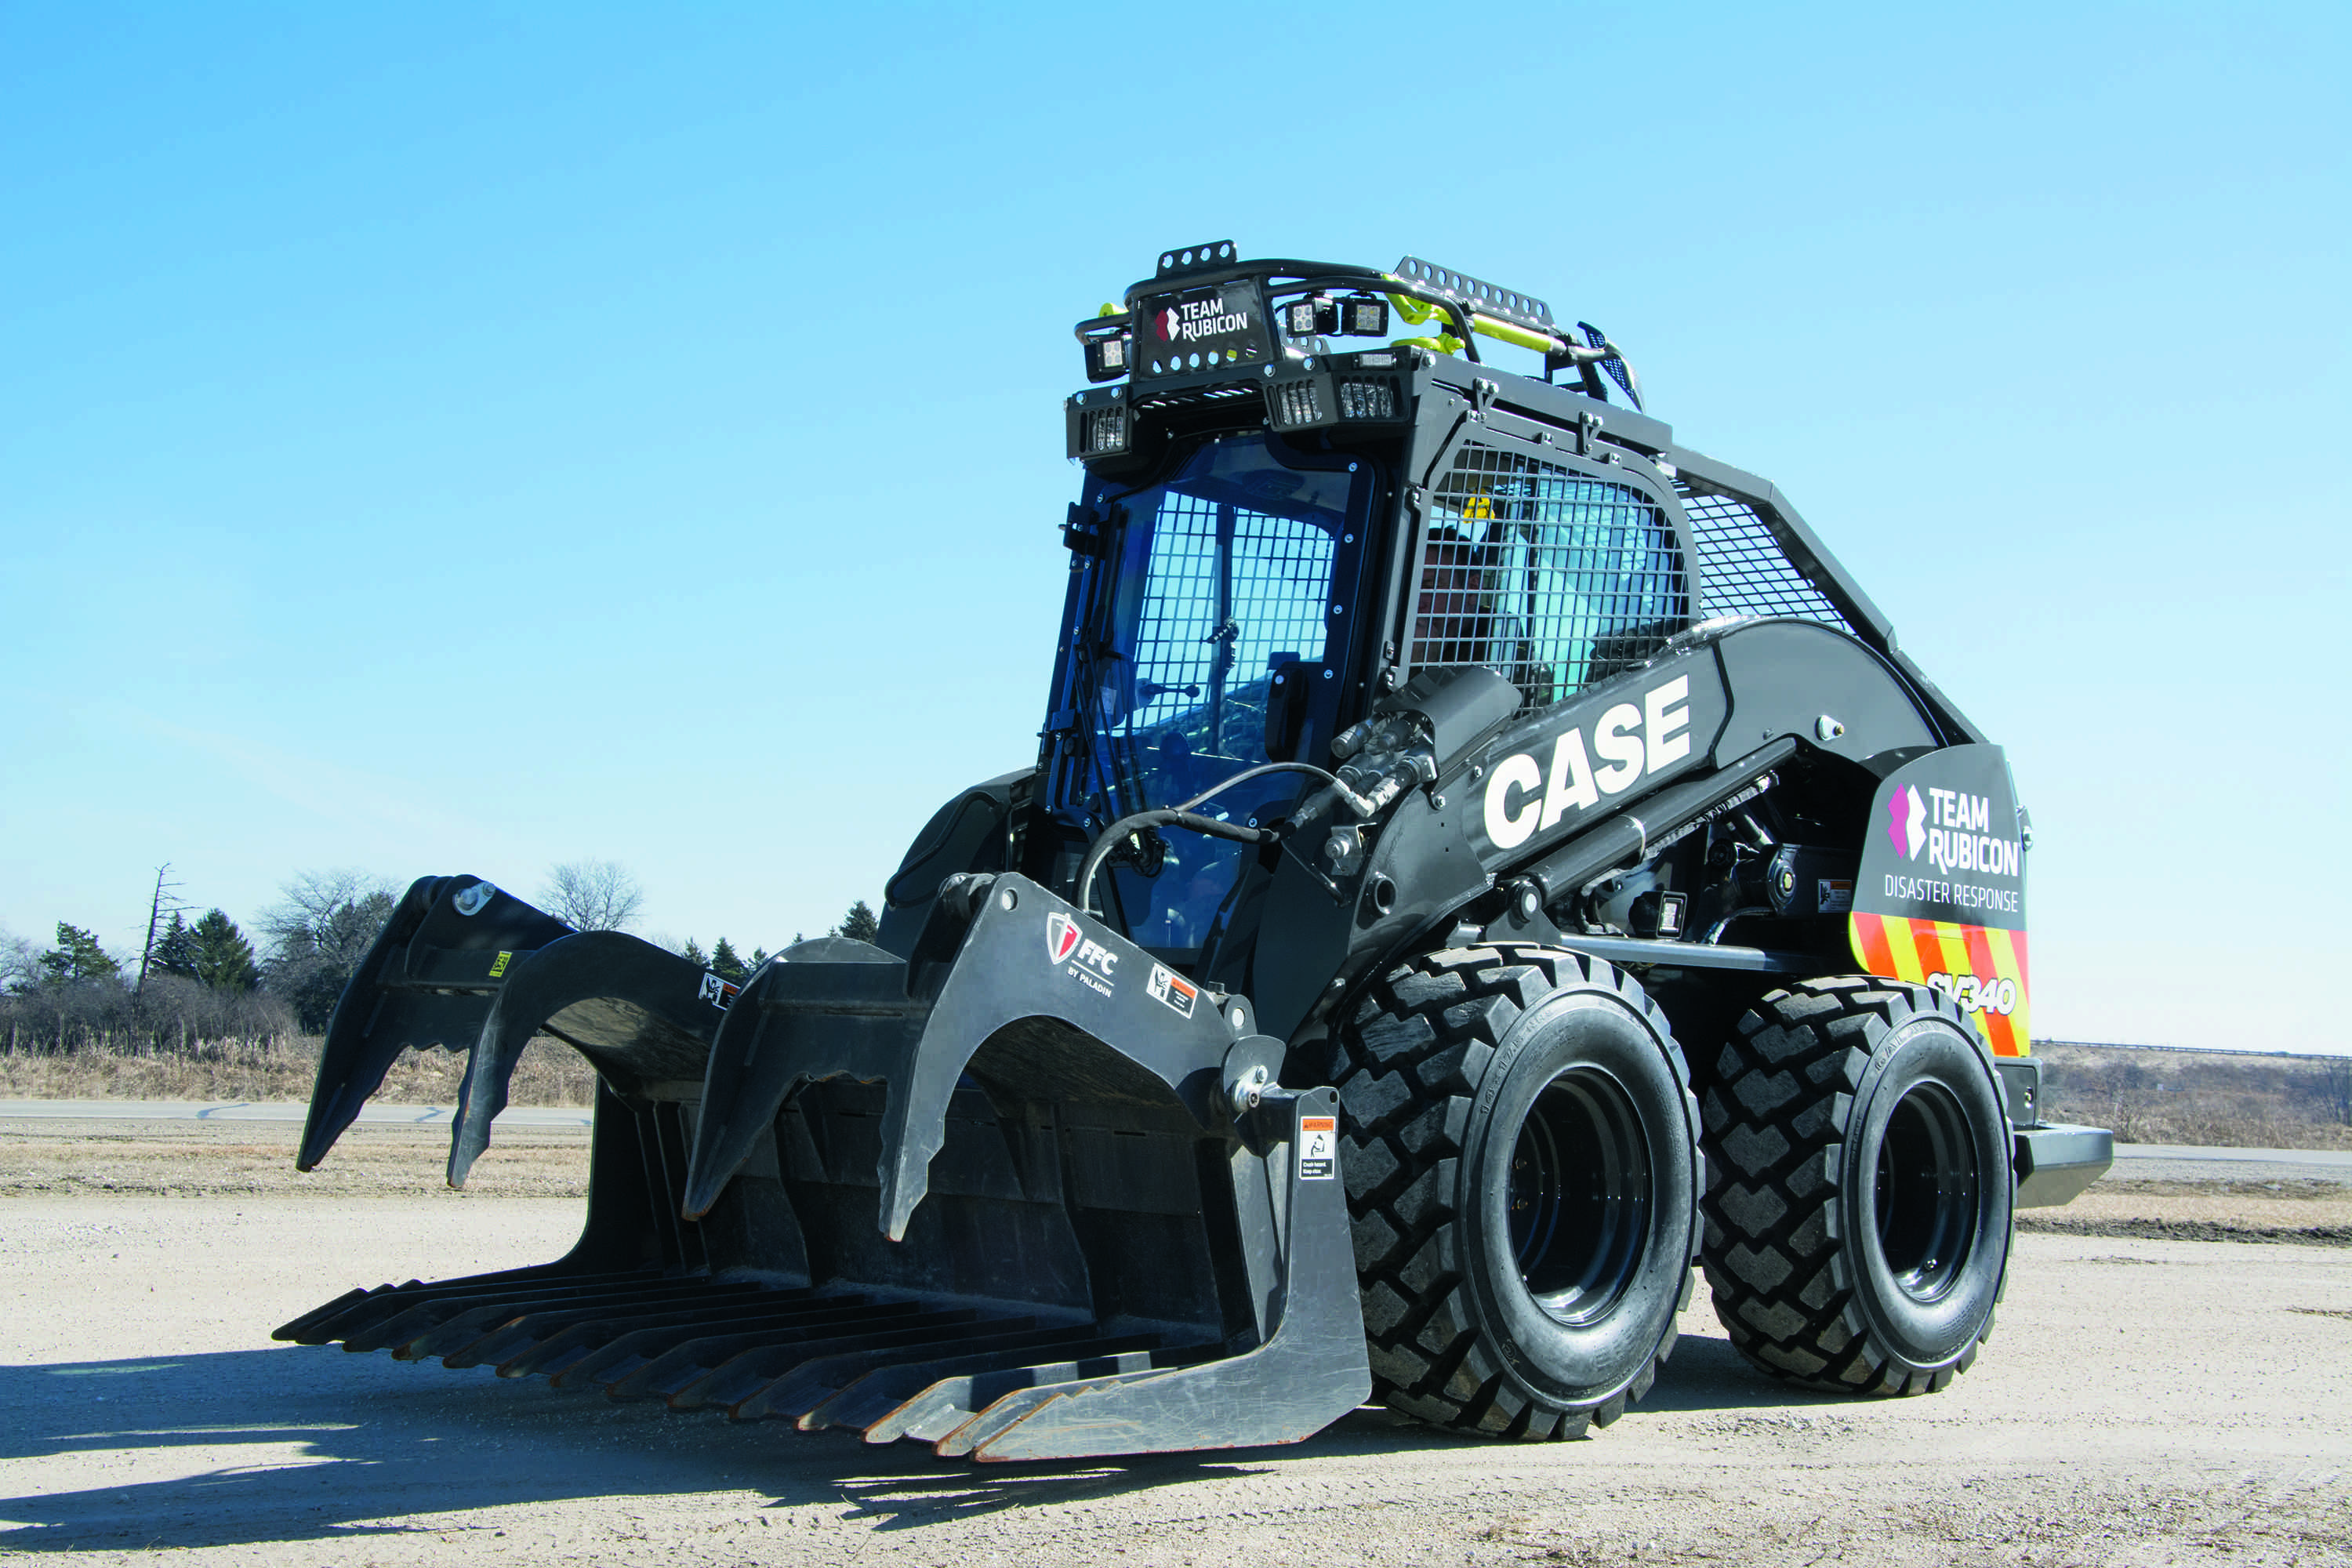 Steer Case Skid : Case construction introducing new skid steer at conexpo